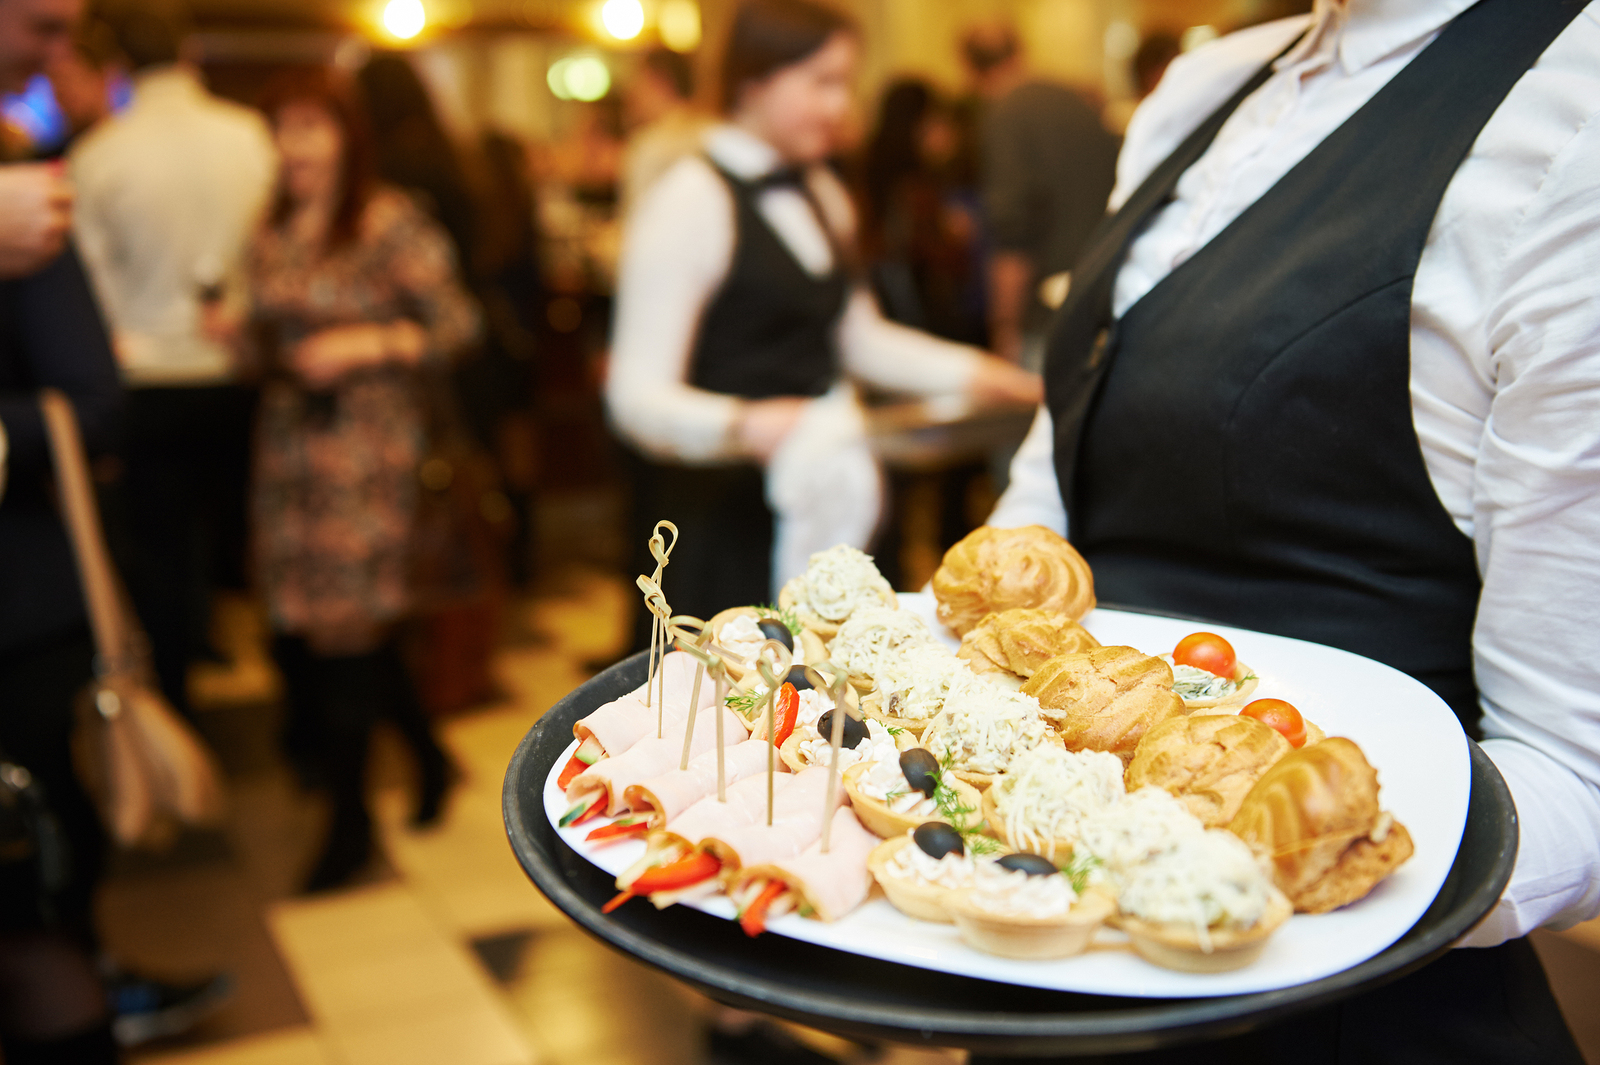 Tips For Selecting The Right Broward Catering Service